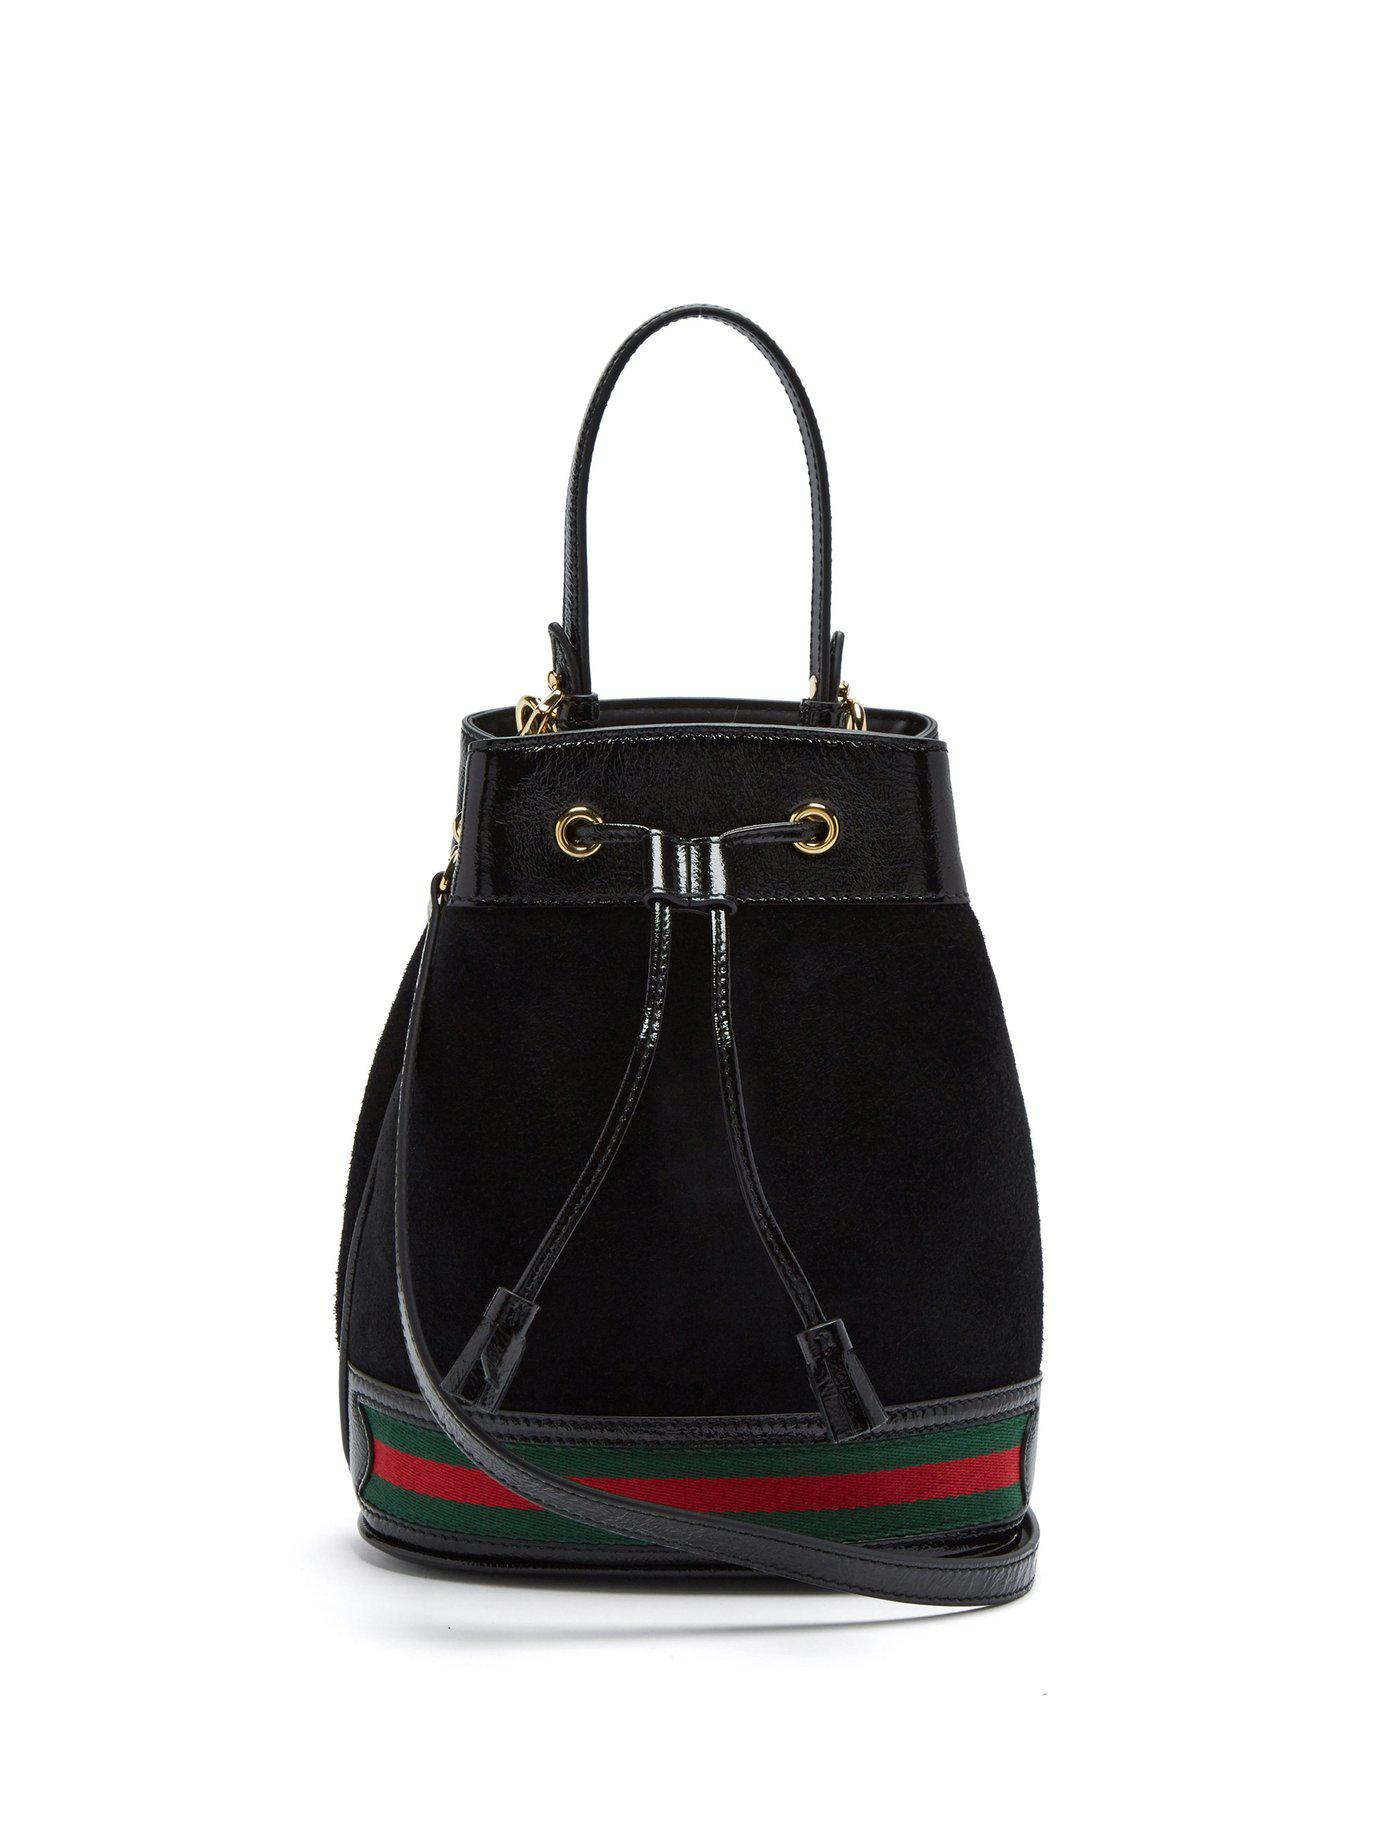 0bf6a4f793e Lyst - Gucci Ophidia Suede Bucket Bag in Black